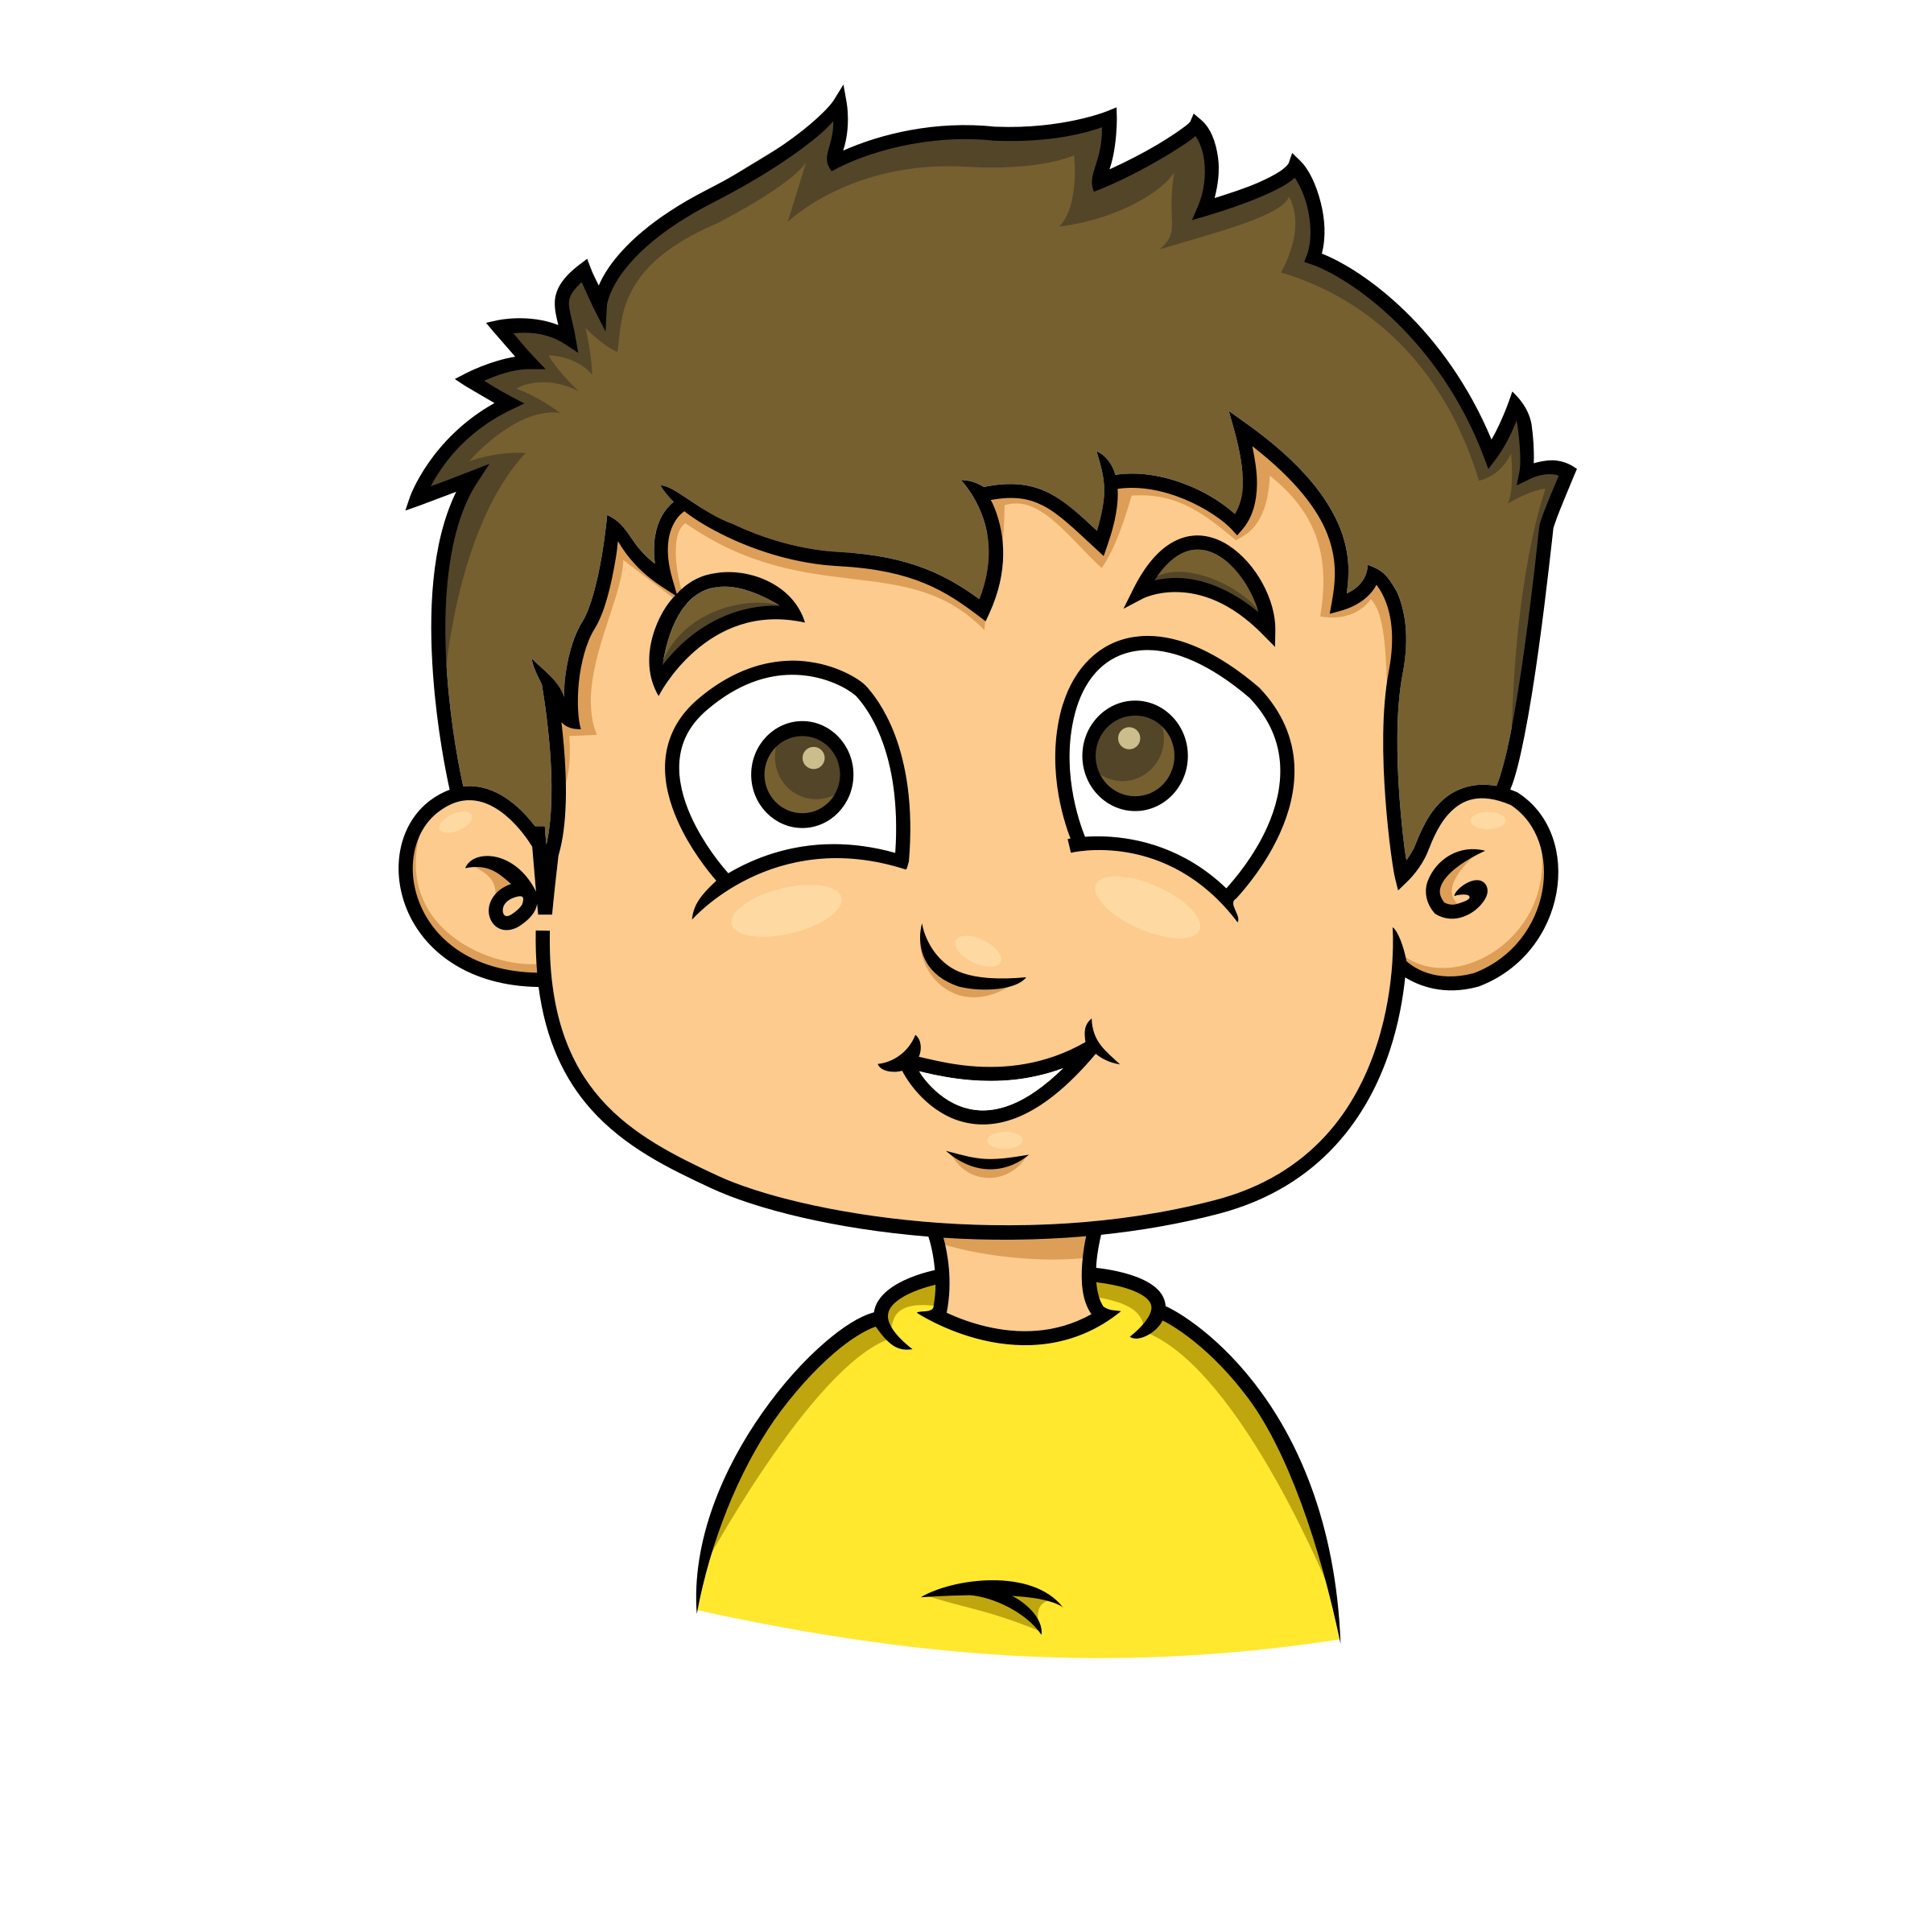 Smile person. Clipart smiling face of